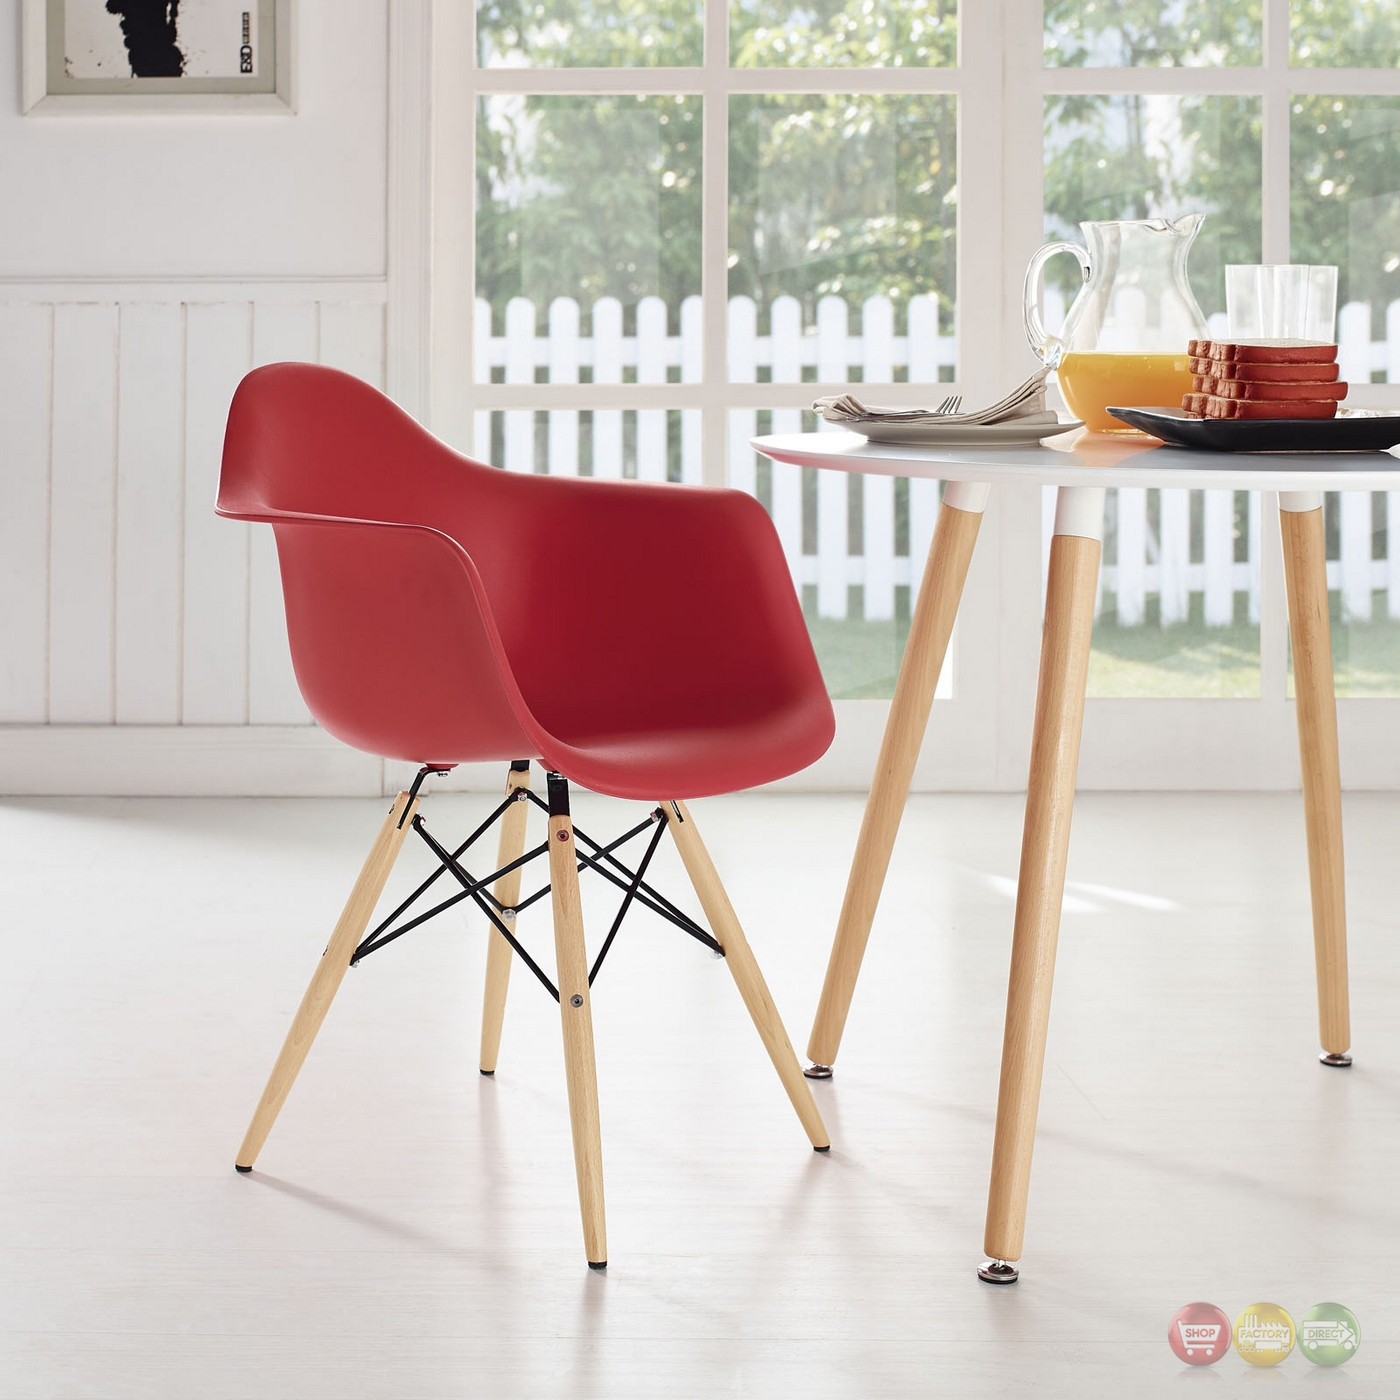 Pyramid Modern Plastic Arm Chair W/ Wood Legs & Steel Accents Red. Full resolution  file, nominally Width 1400 Height 1400 pixels, file with #962830.